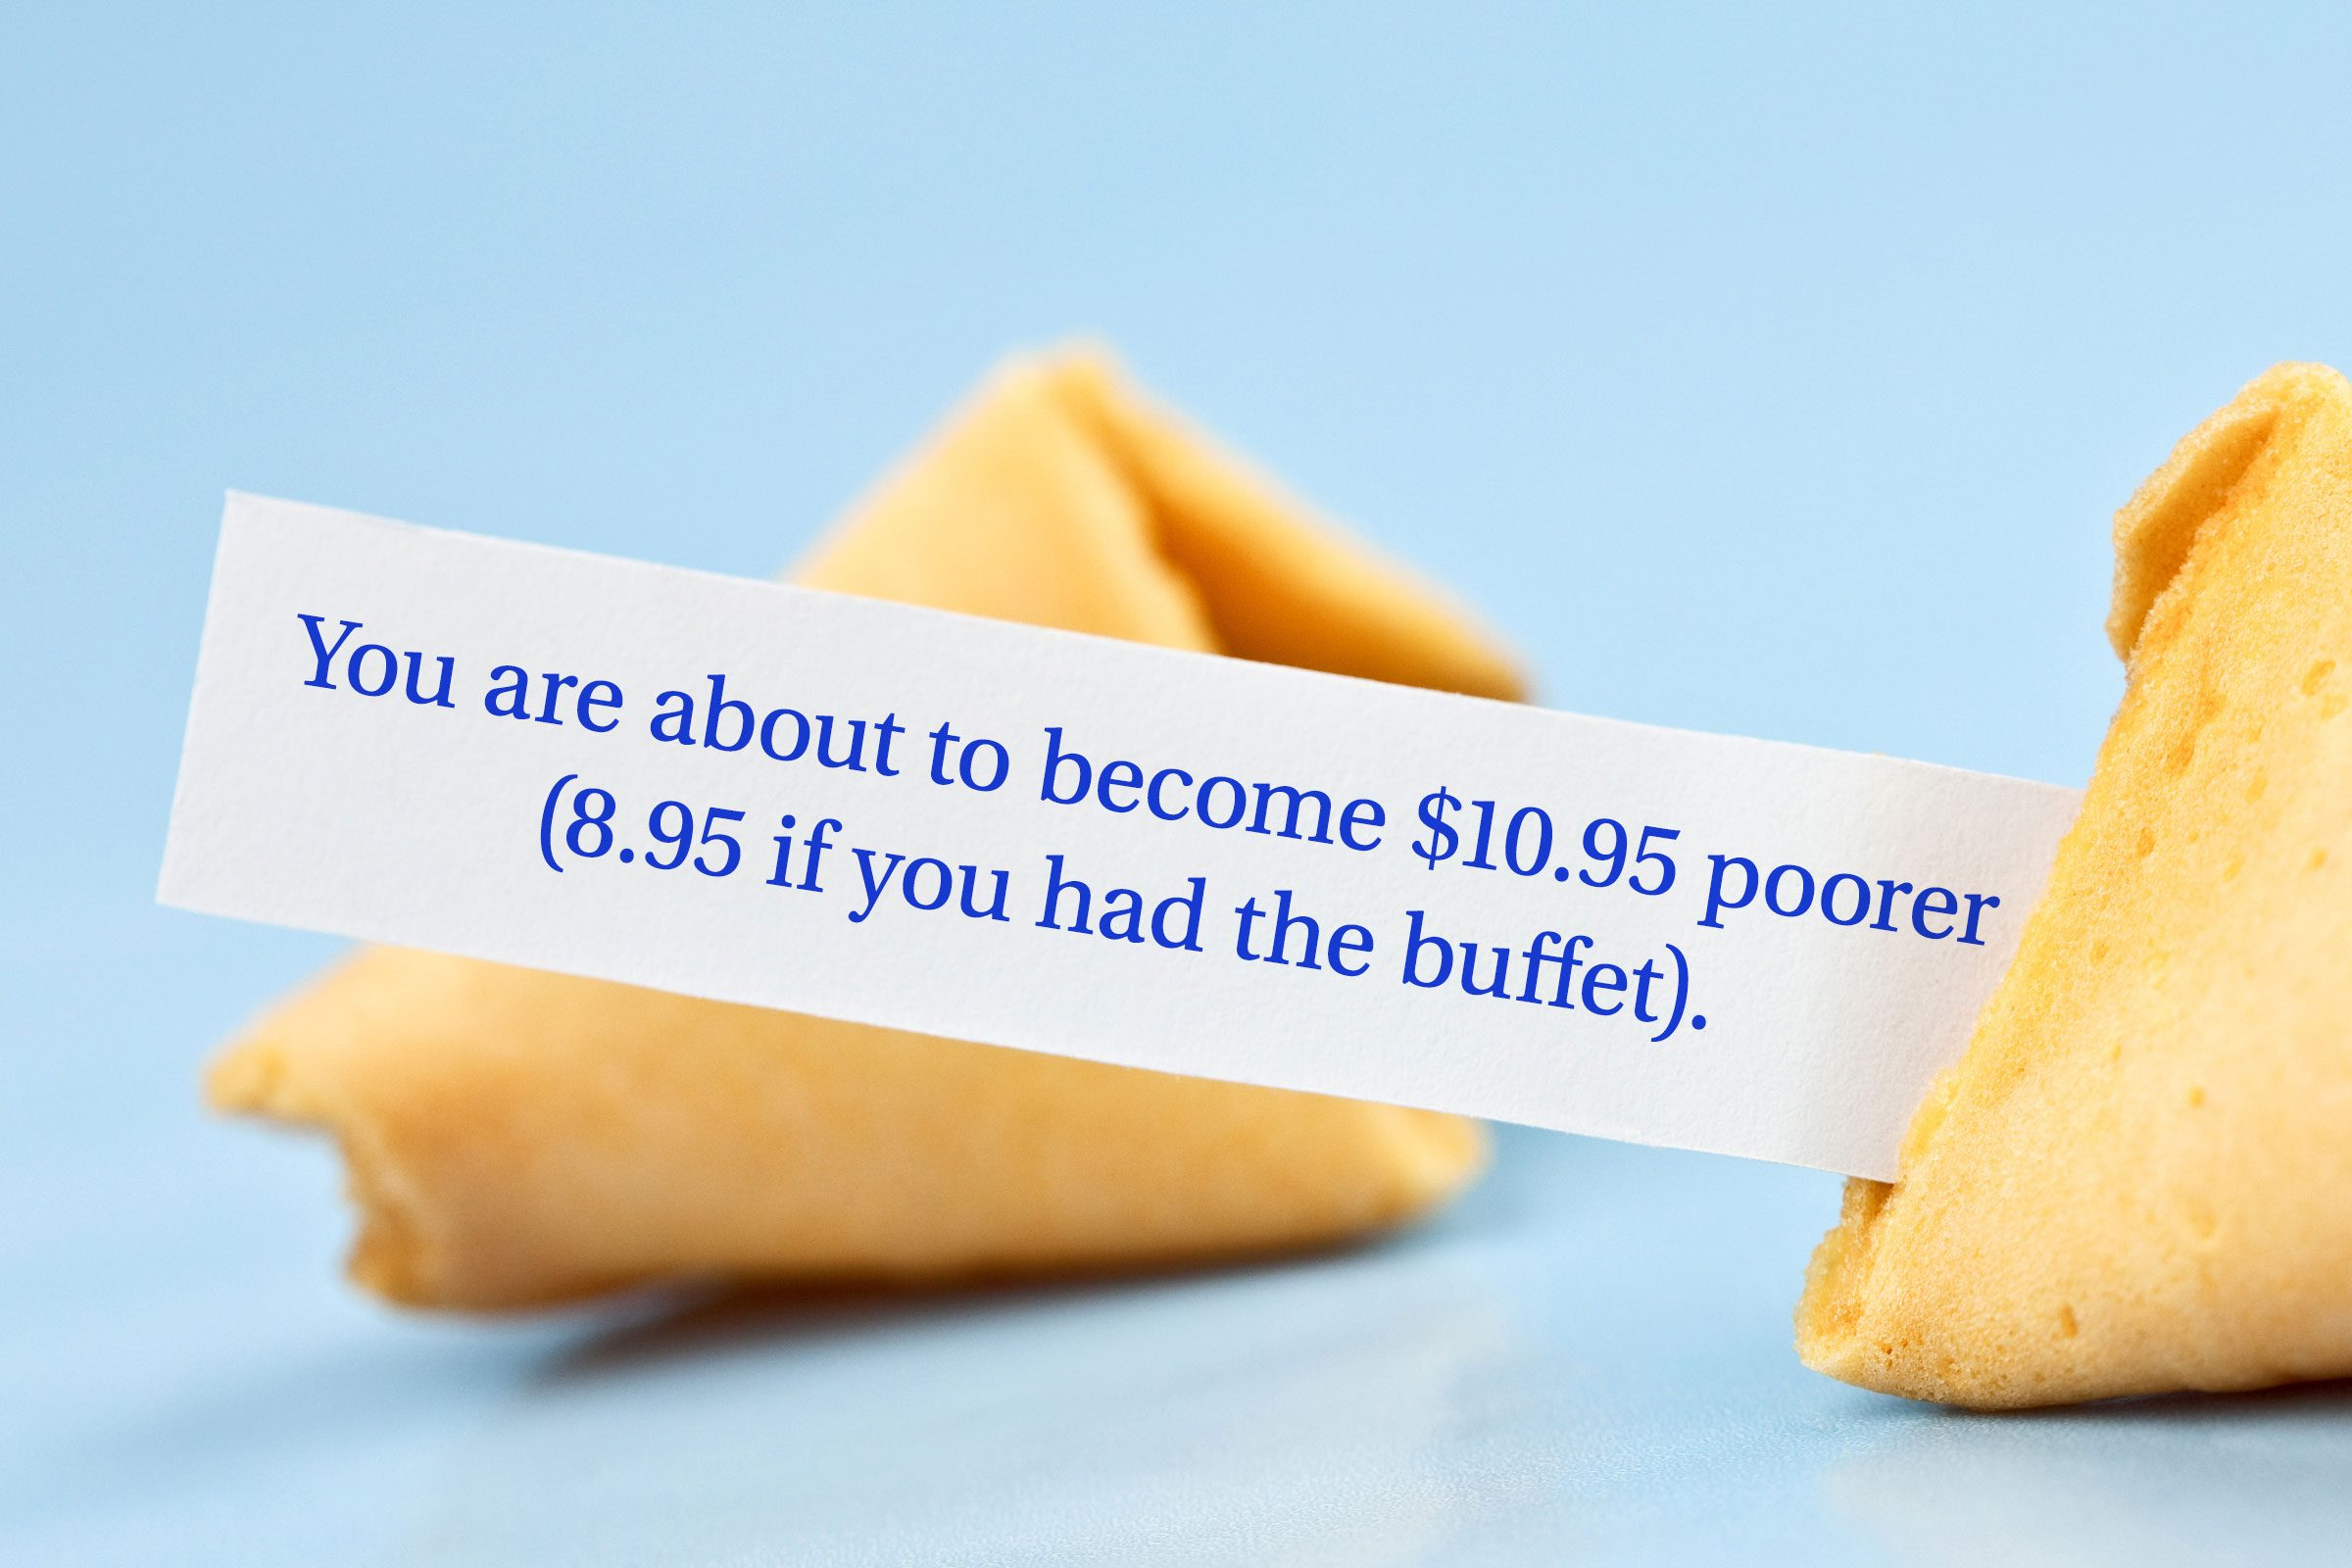 For image: You are about to become $10.95 poorer (8.95 if you had the buffet).